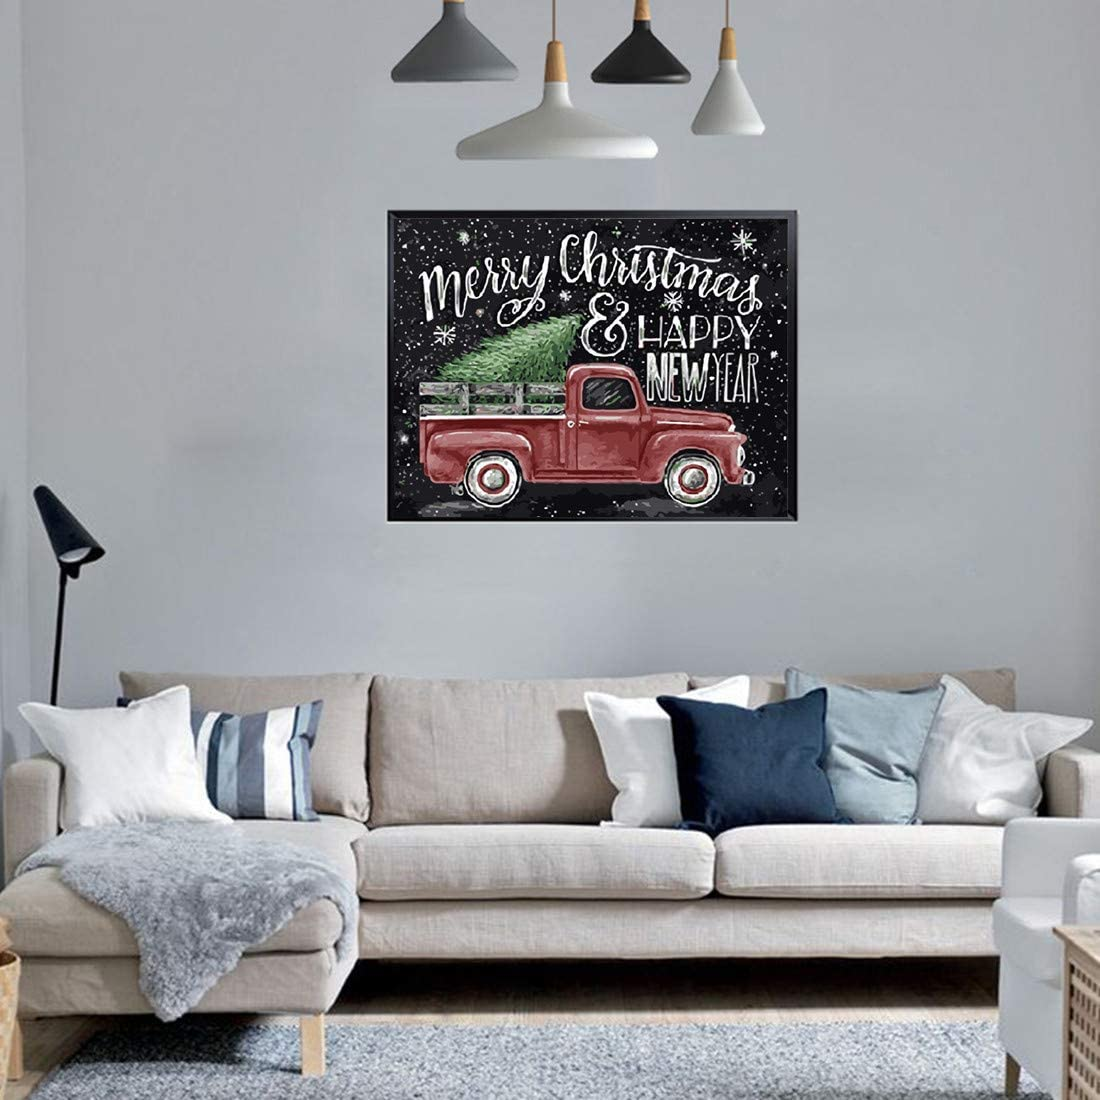 Karyees 16x20 Inch Christmas Red Truck Paint by Numbers Kits Presents for Kids and Adult Christmas Tree DIY Painting by Numbers DIY Canvas Painting by Numbers Acrylic Painting Kits Happy New Year